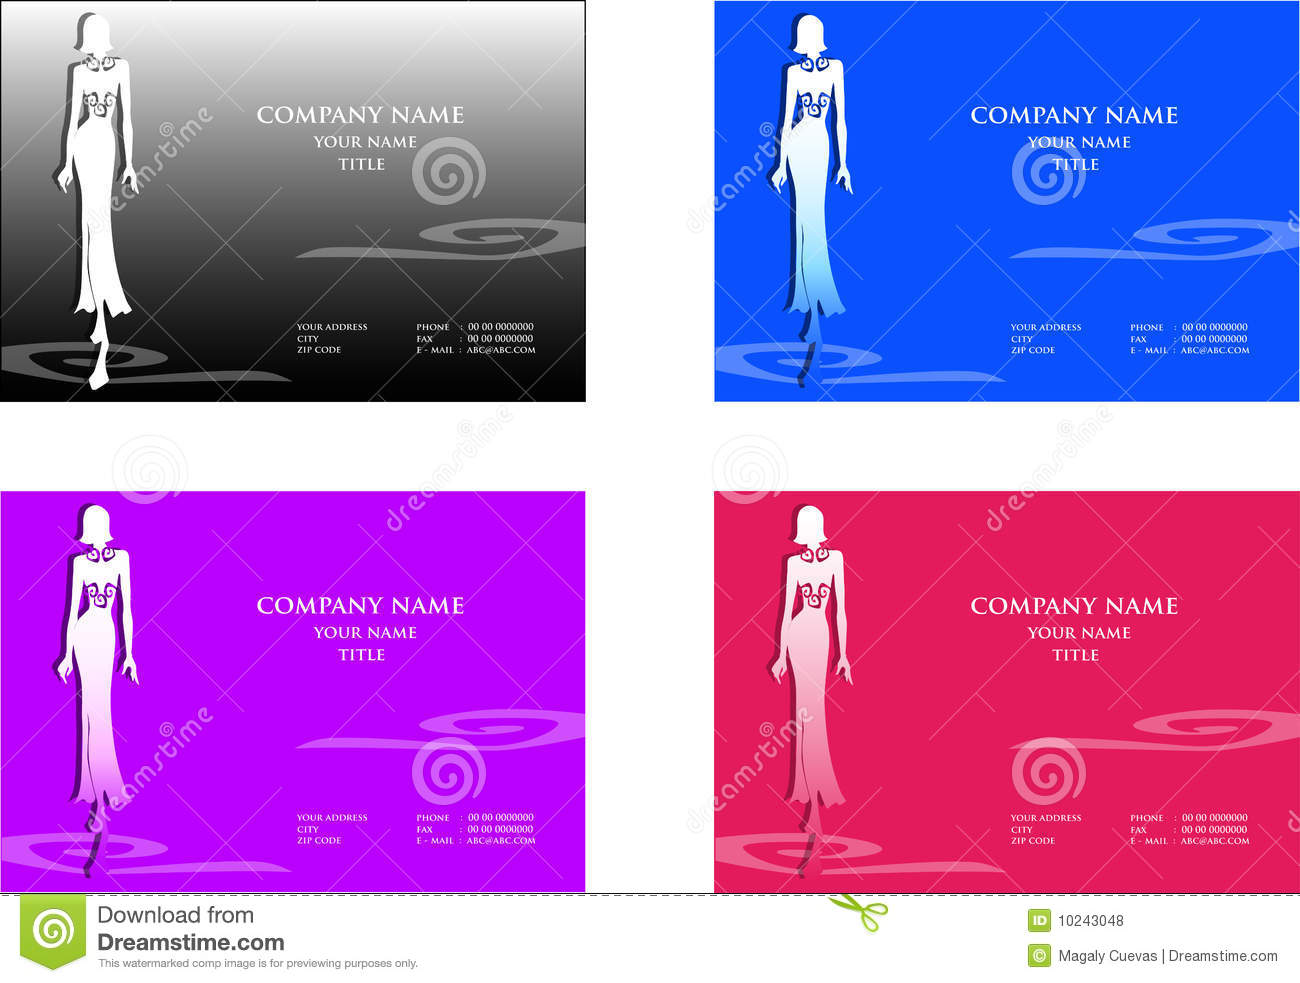 Fashion business cards stock vector illustration of woman 10243048 fashion business cards cheaphphosting Choice Image